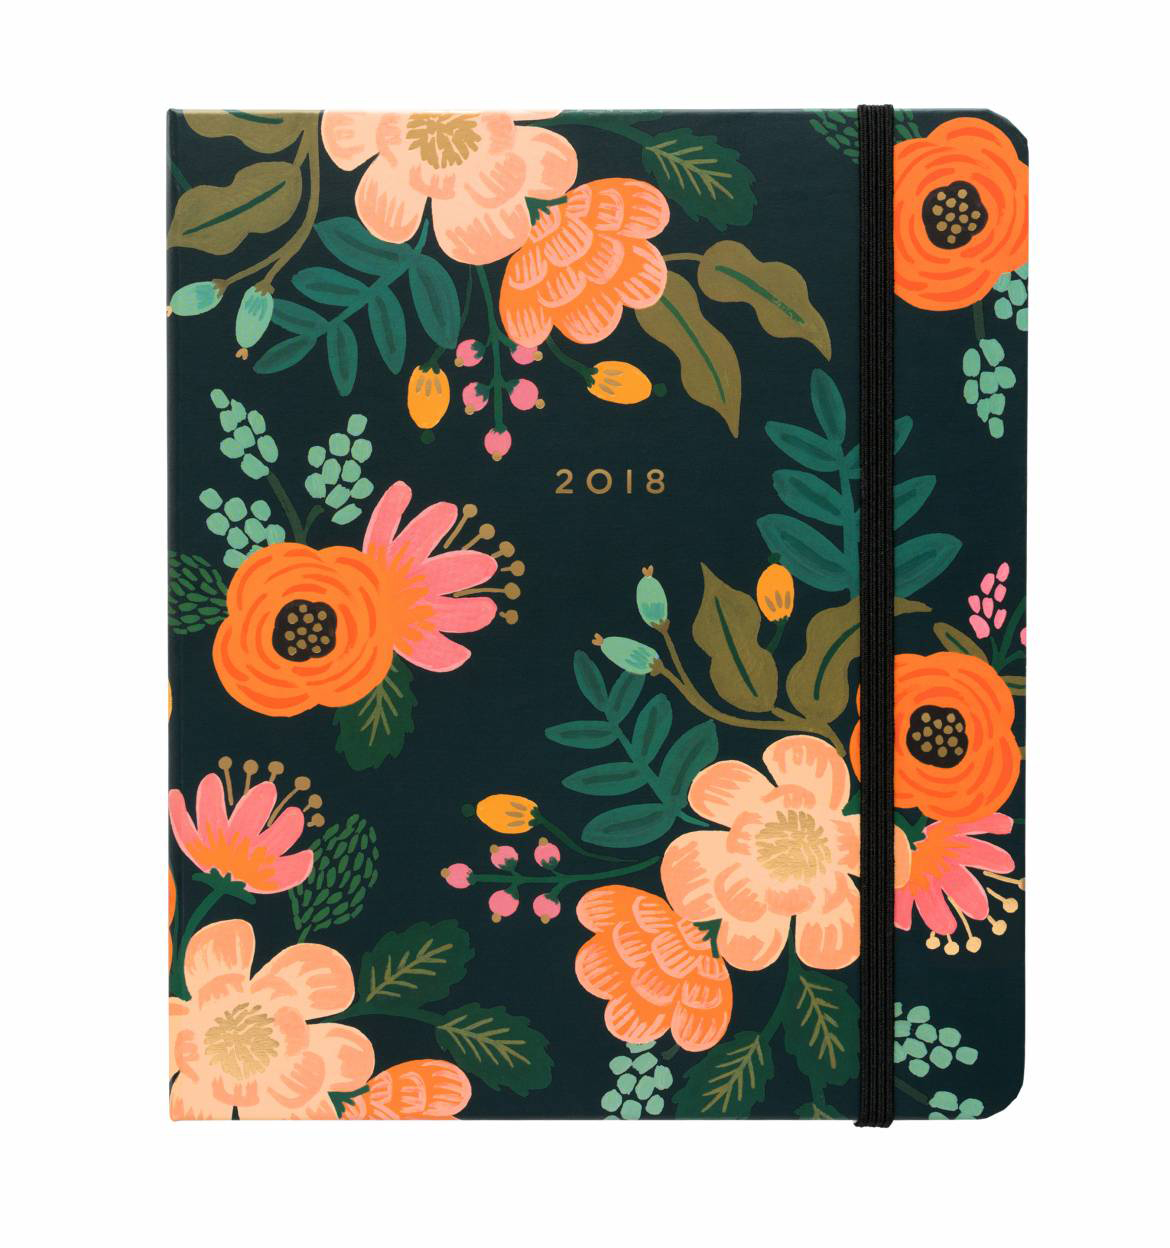 rifle paper co. 17 month 17-18.jpg